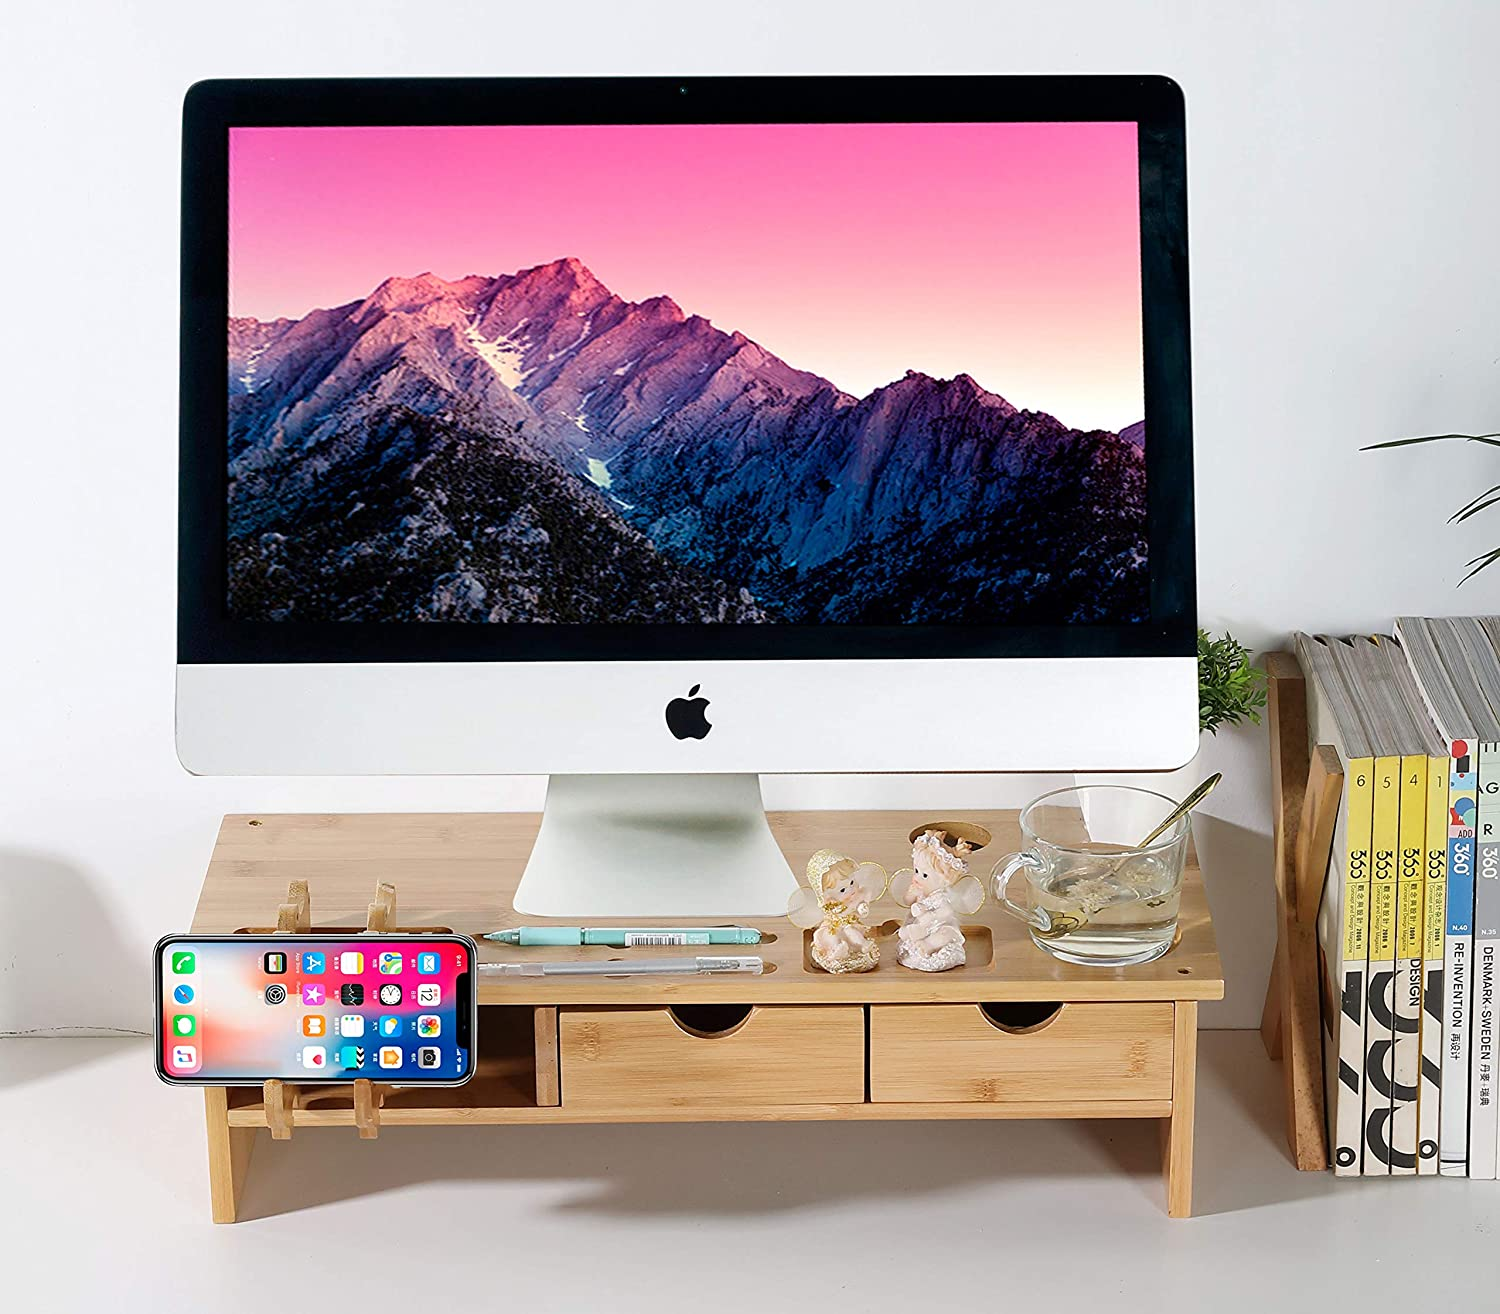 Monitor Stand Riser with Drawers-Solid Bamboo Riser Supports,Desk Organizer with Phone Holder Office Supplies Countertop Bookcase,TV PC Laptop Computer Stand with Cellphone Holder